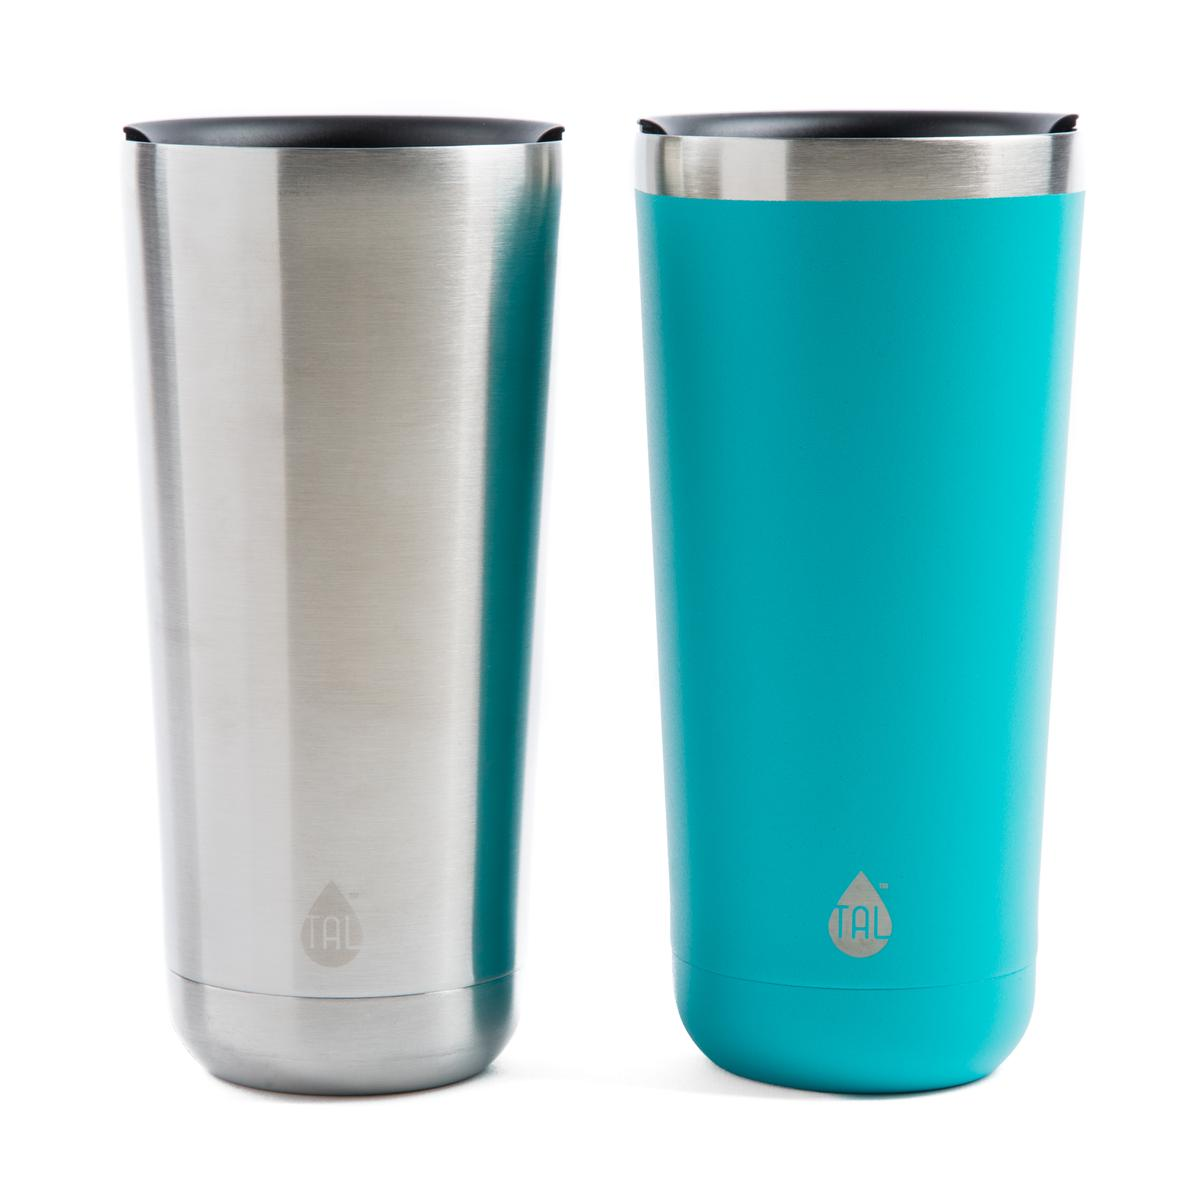 Tal 22 Ounce XL Teal Stainless Steel Double Wall Vacuum Insulated Ranger Pint, 1 Each